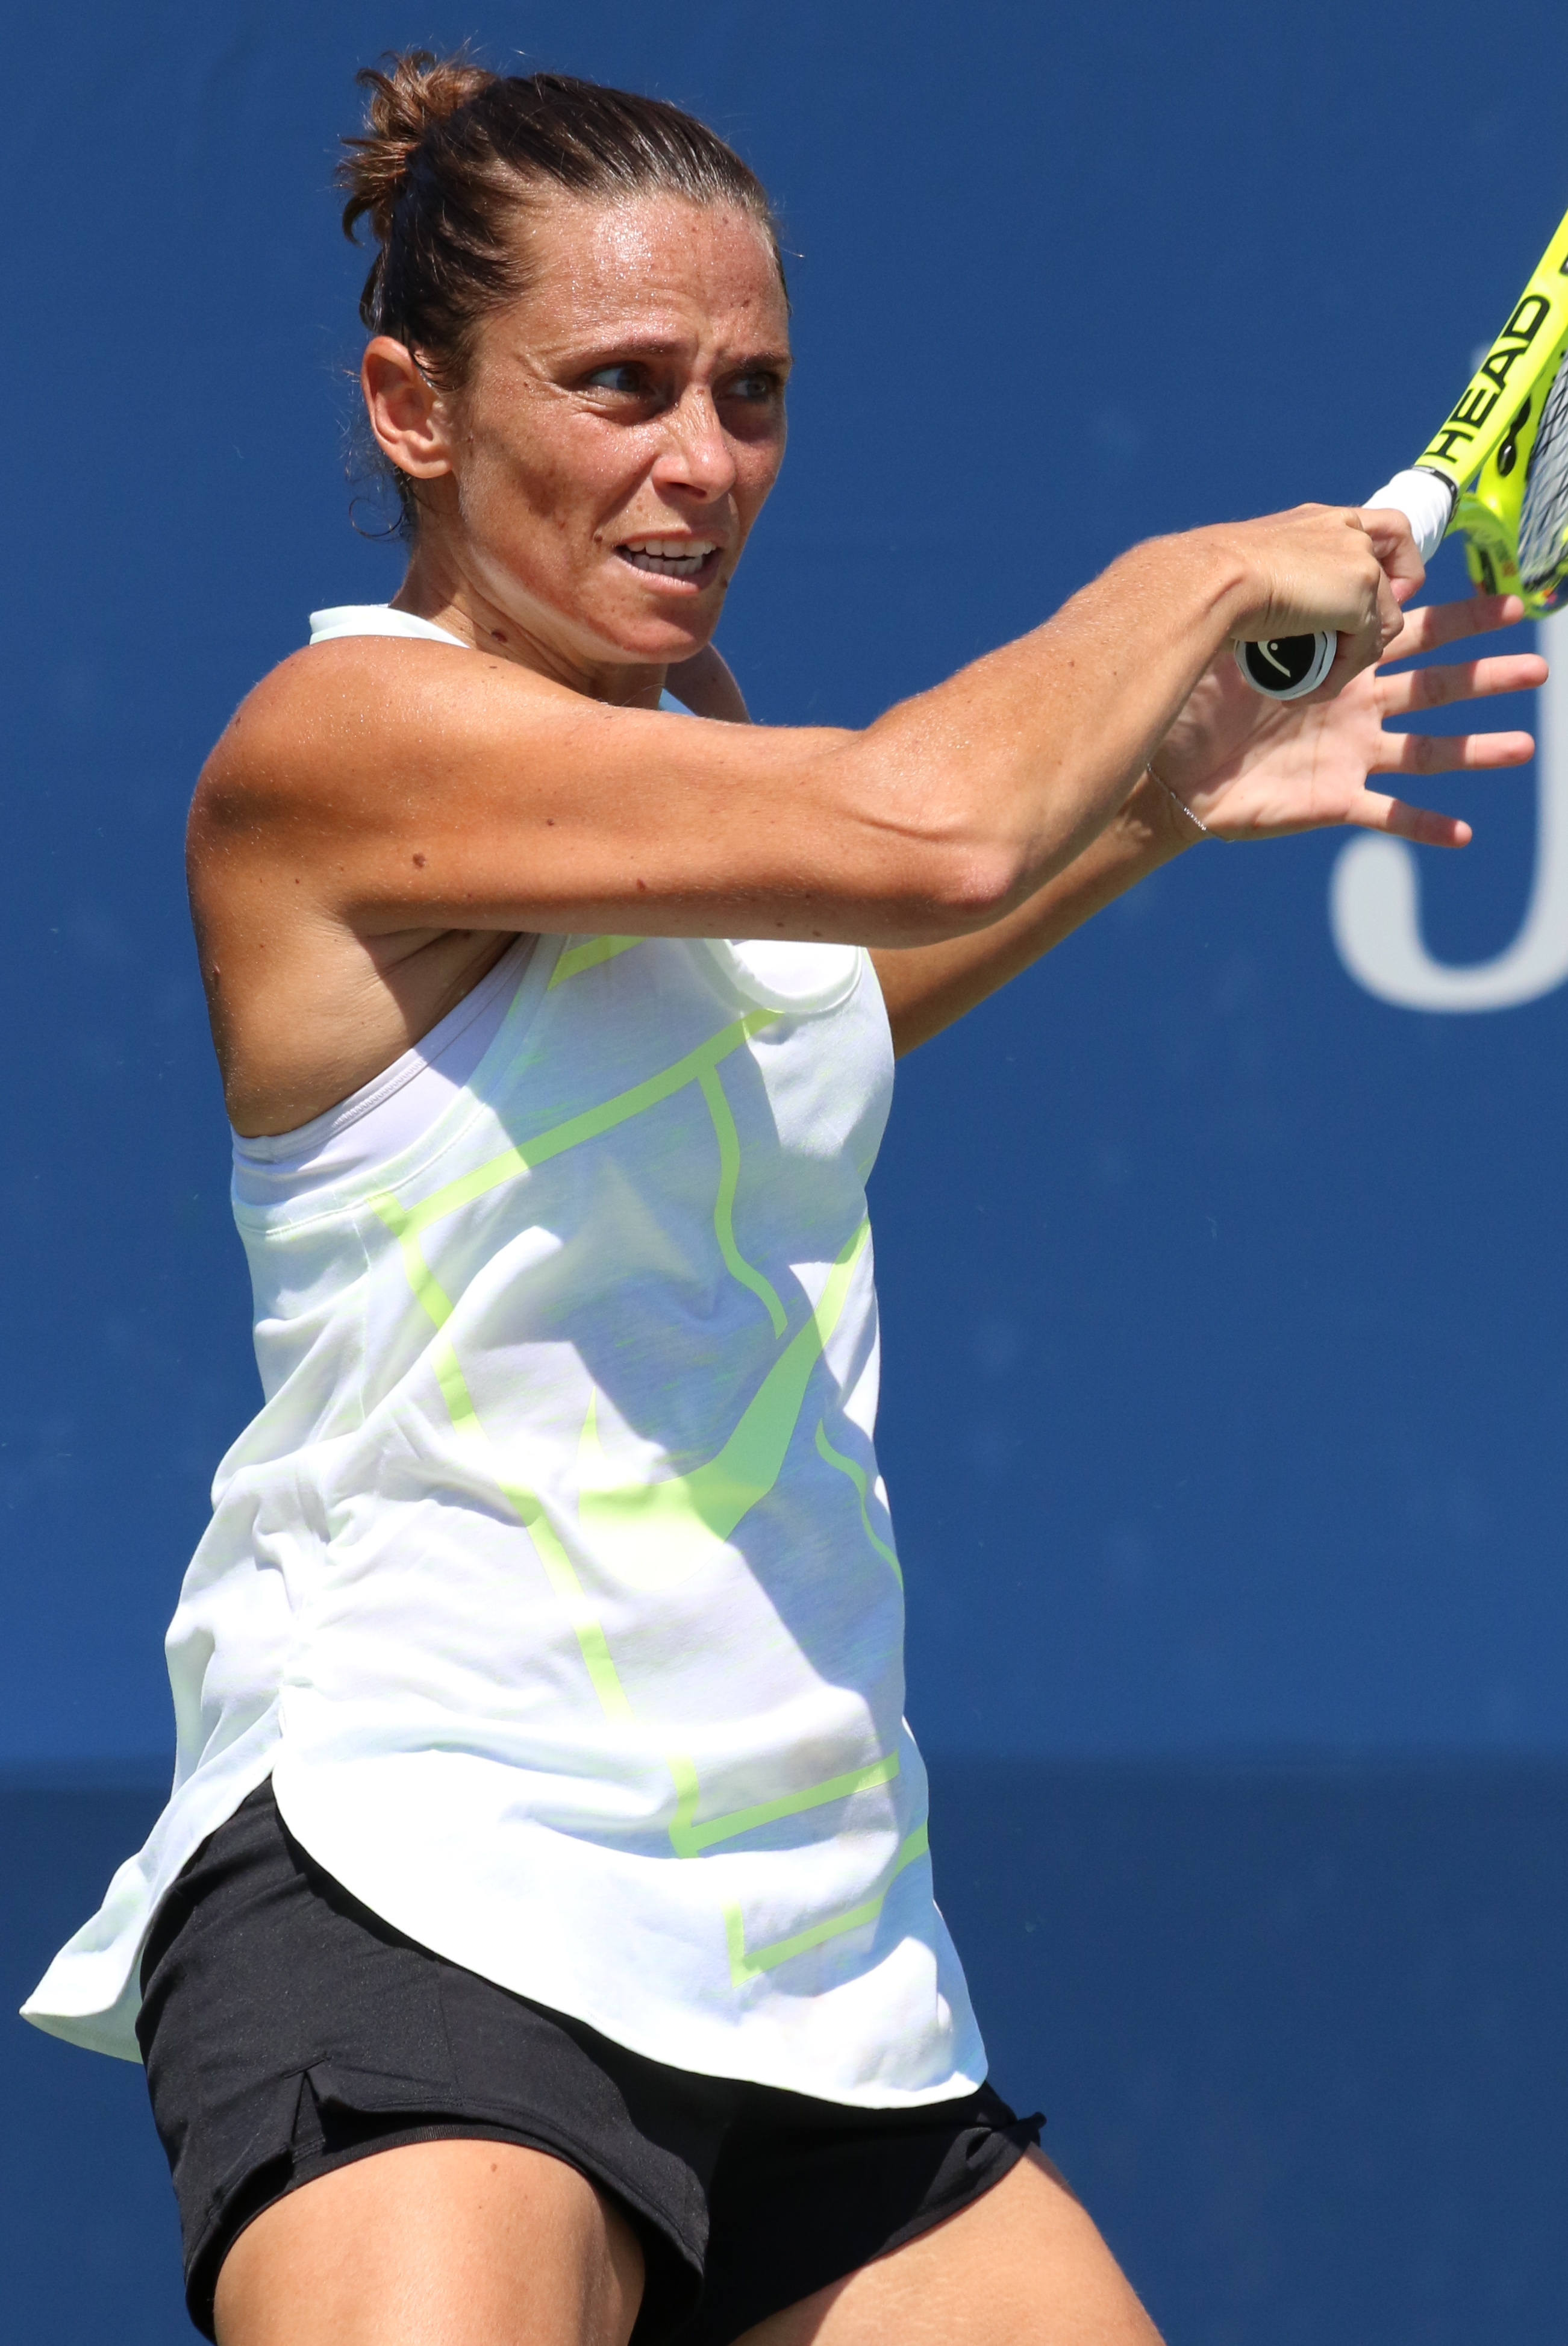 The 35-year old daughter of father Angelo Vinci and mother Luisa Vinci Roberta Vinci in 2018 photo. Roberta Vinci earned a  million dollar salary - leaving the net worth at 7 million in 2018